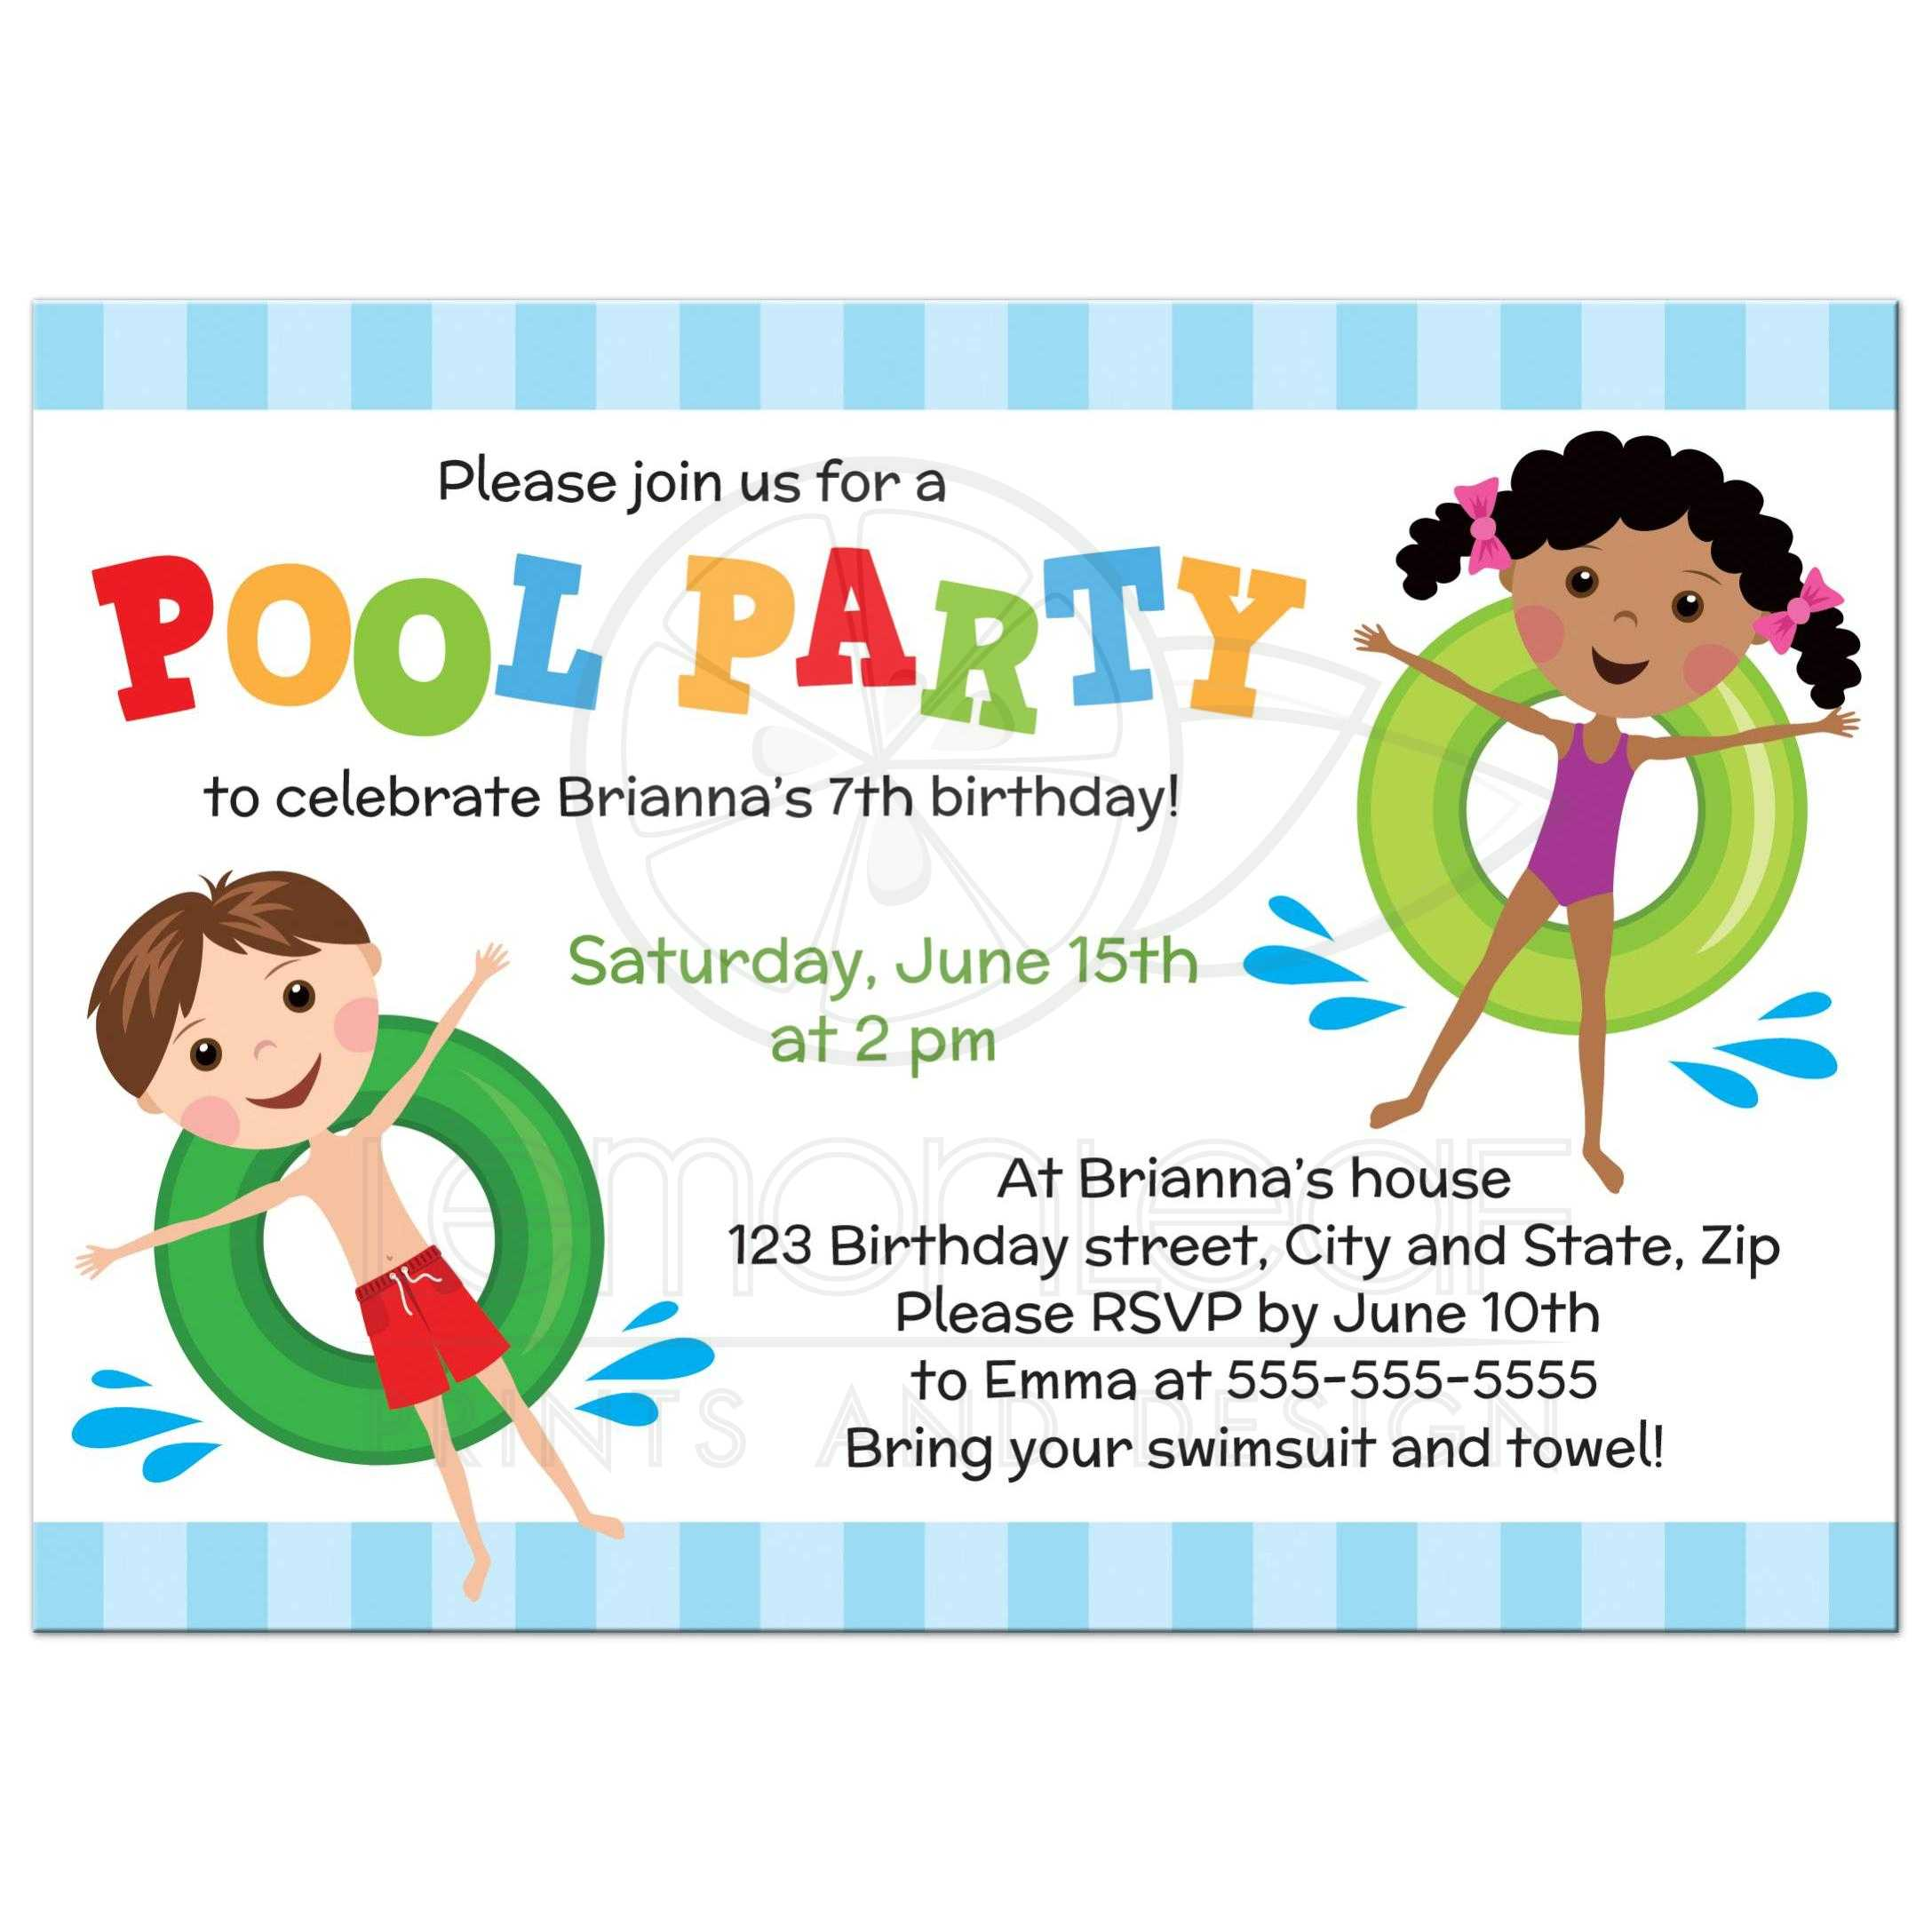 swimming birthday party invitation ideas ; 24919_Rectangle_Front_Cute_brunette_boy_and_african_american_girl_on_inflatable_rings_pool_party_invitation_for_kids